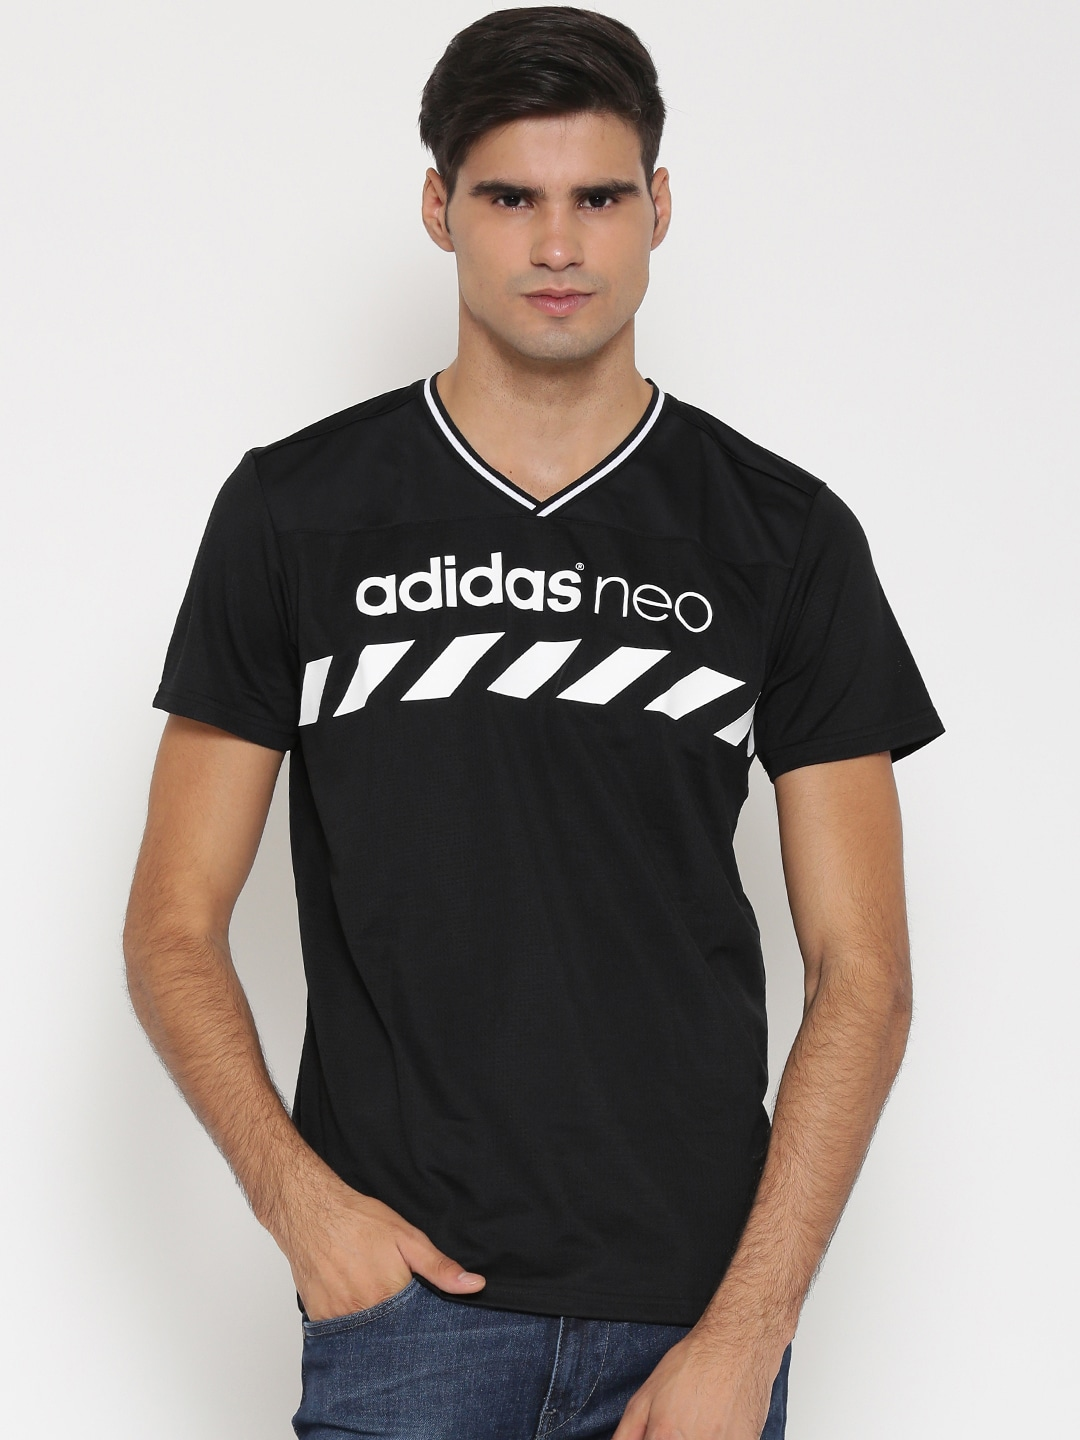 bdf77062731d Men s Adidas Clothing - Buy Adidas Clothing for Men Online in India